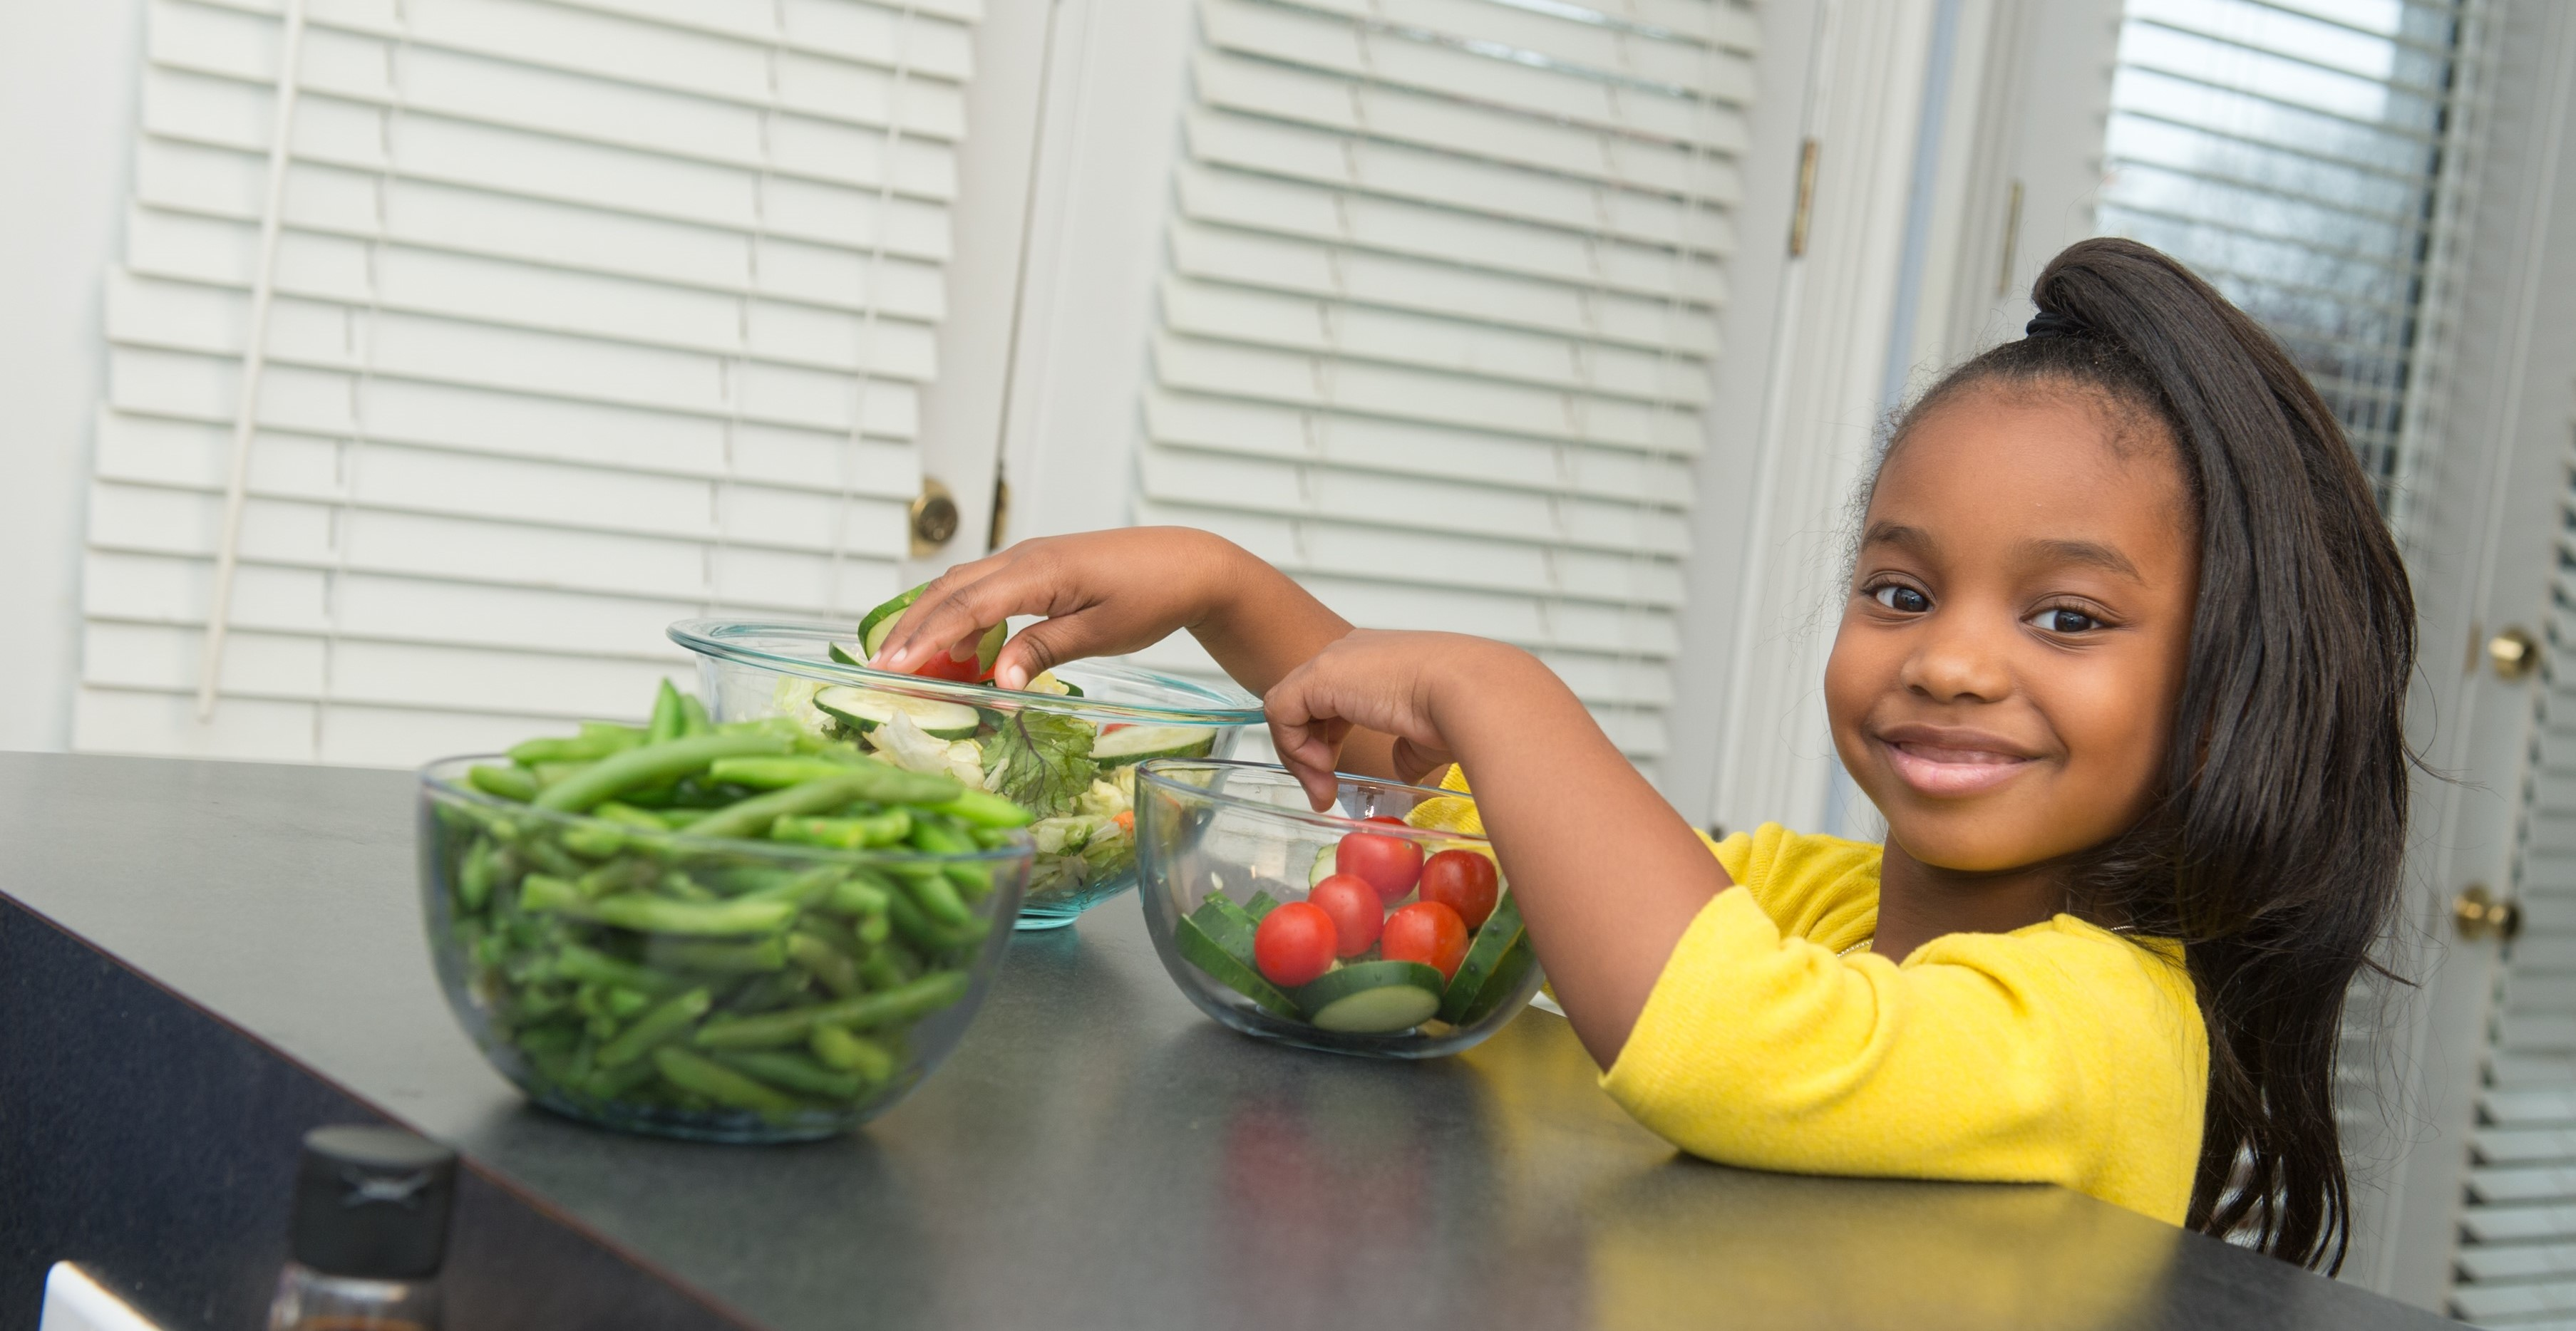 Young girl smiling with a bowl of vegetables.